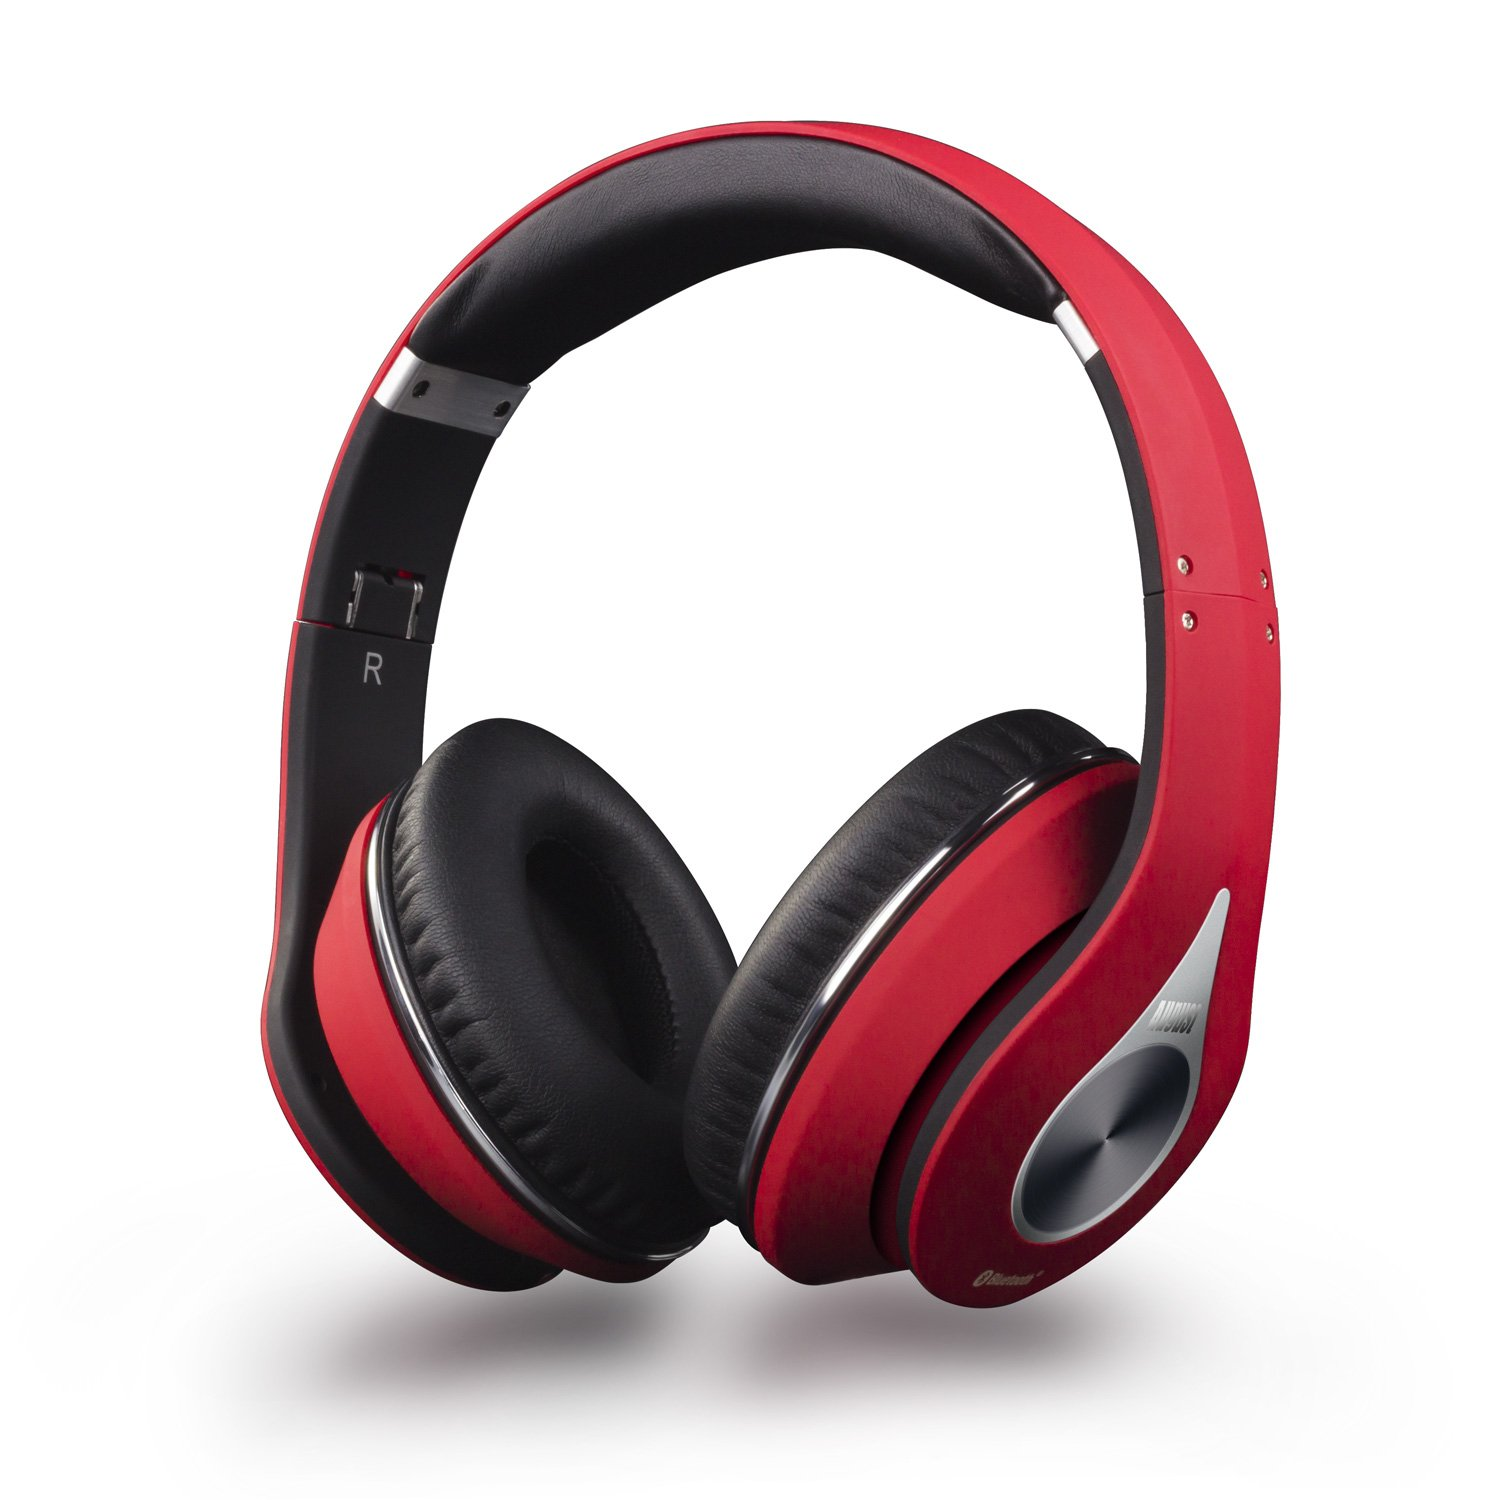 Bluetooth Headphones - August EP640 - Wireless Over Ear Headphones with aptX/NFC/3.5mm Audio In/Headset Microphone - Red